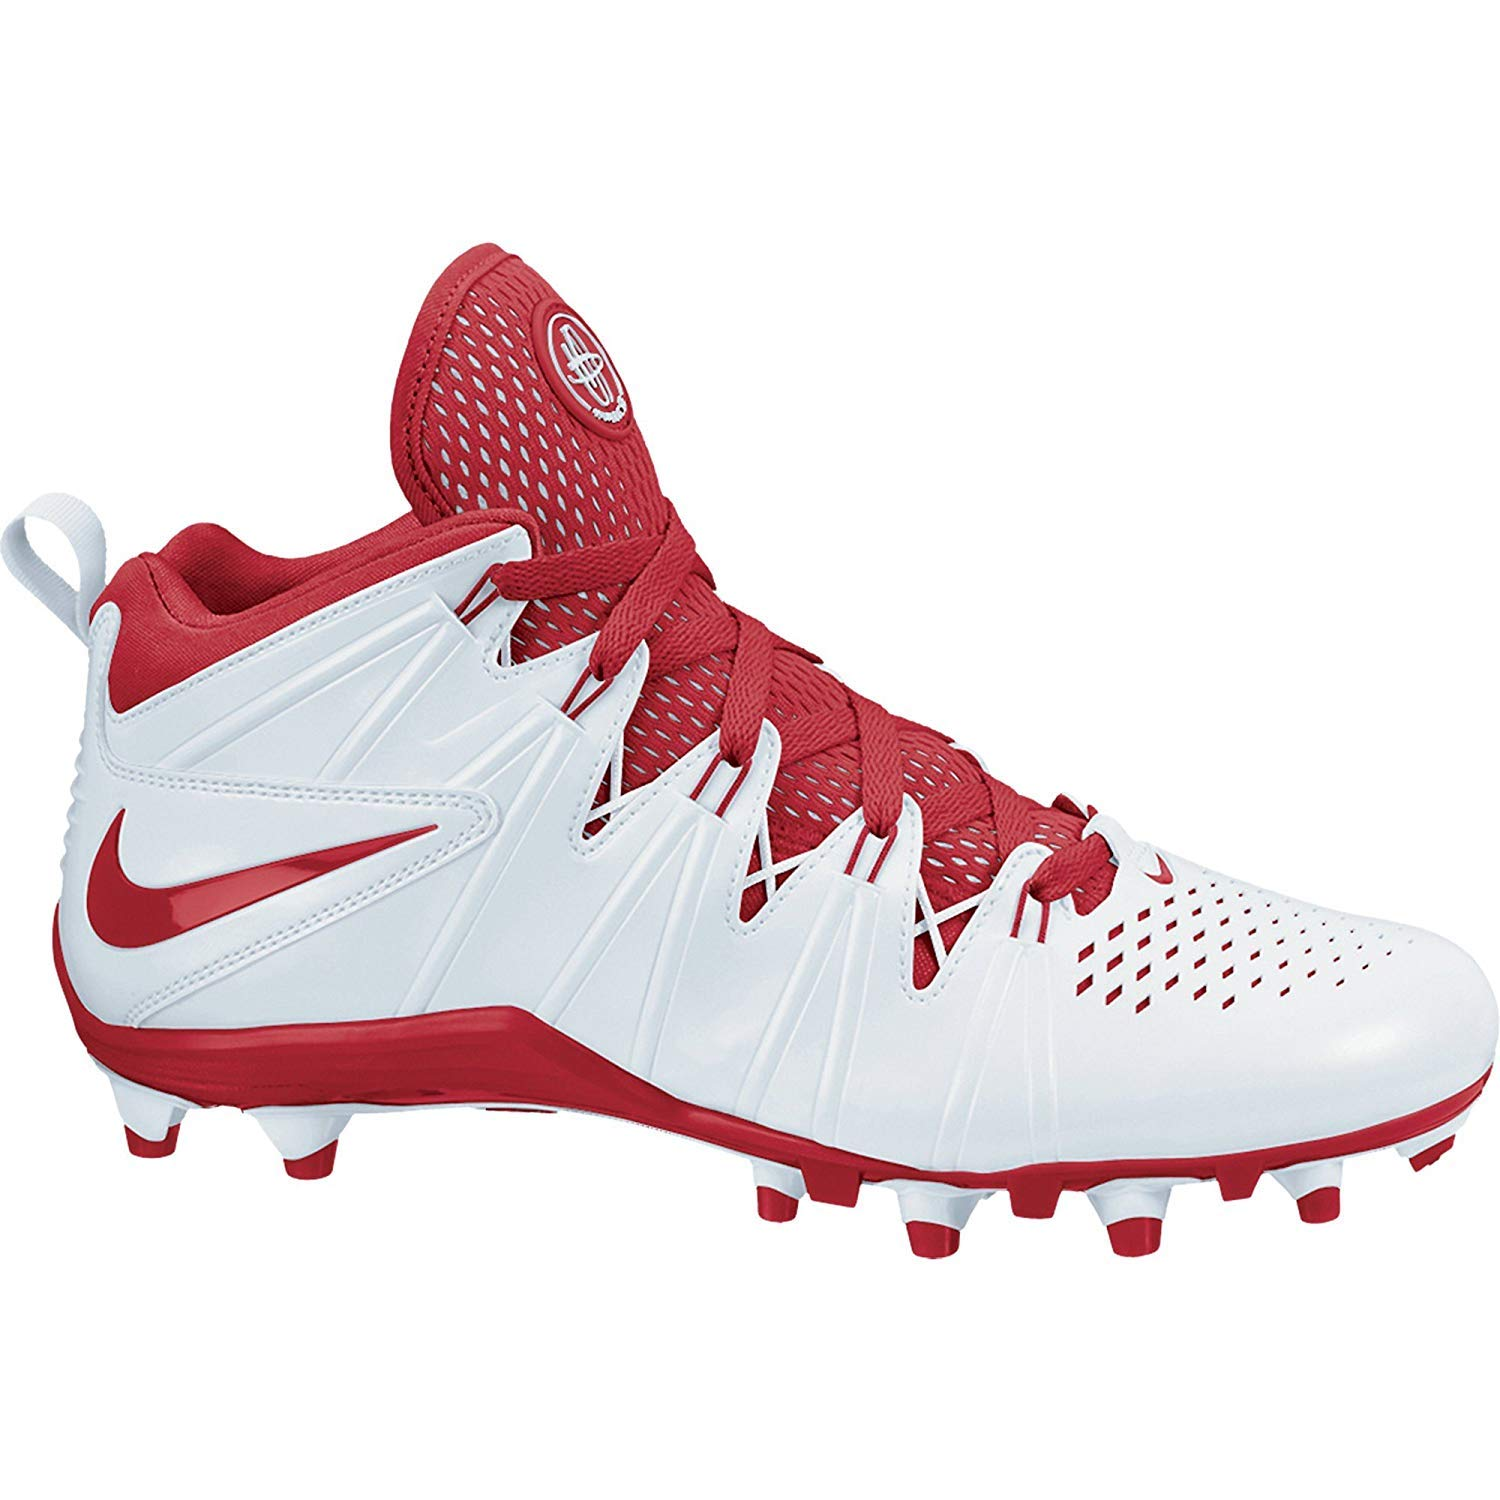 73192f501c61 Amazon.com  NIKE NEW Huarache 4 LAX Lacrosse Football Cleats White Red Sz  11.5 M  Sports   Outdoors